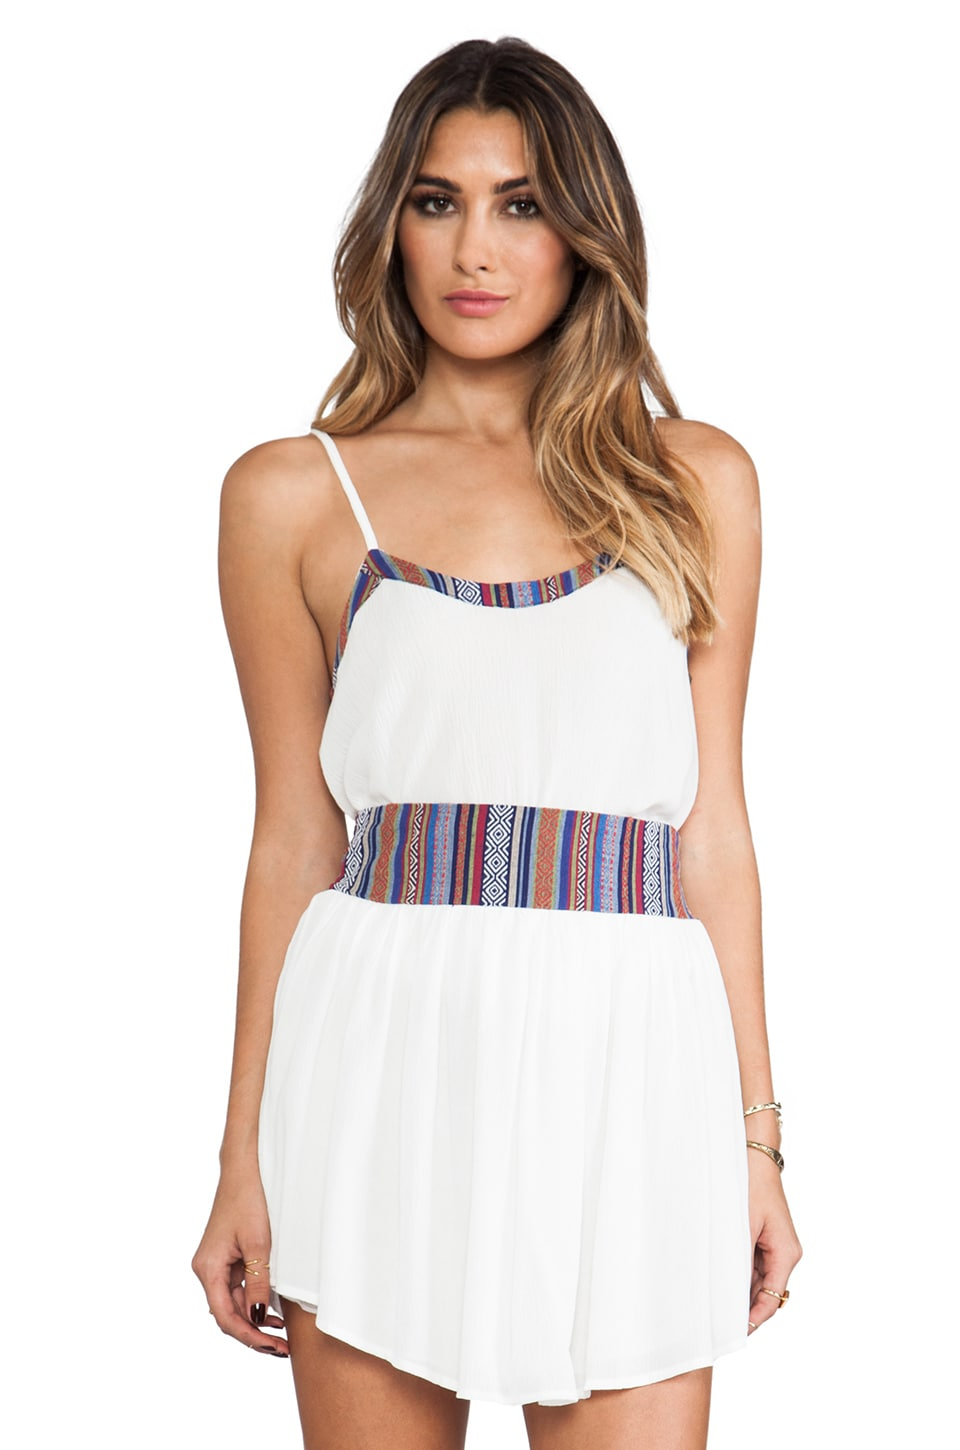 Surf Gypsy Tribal Crop Top in White